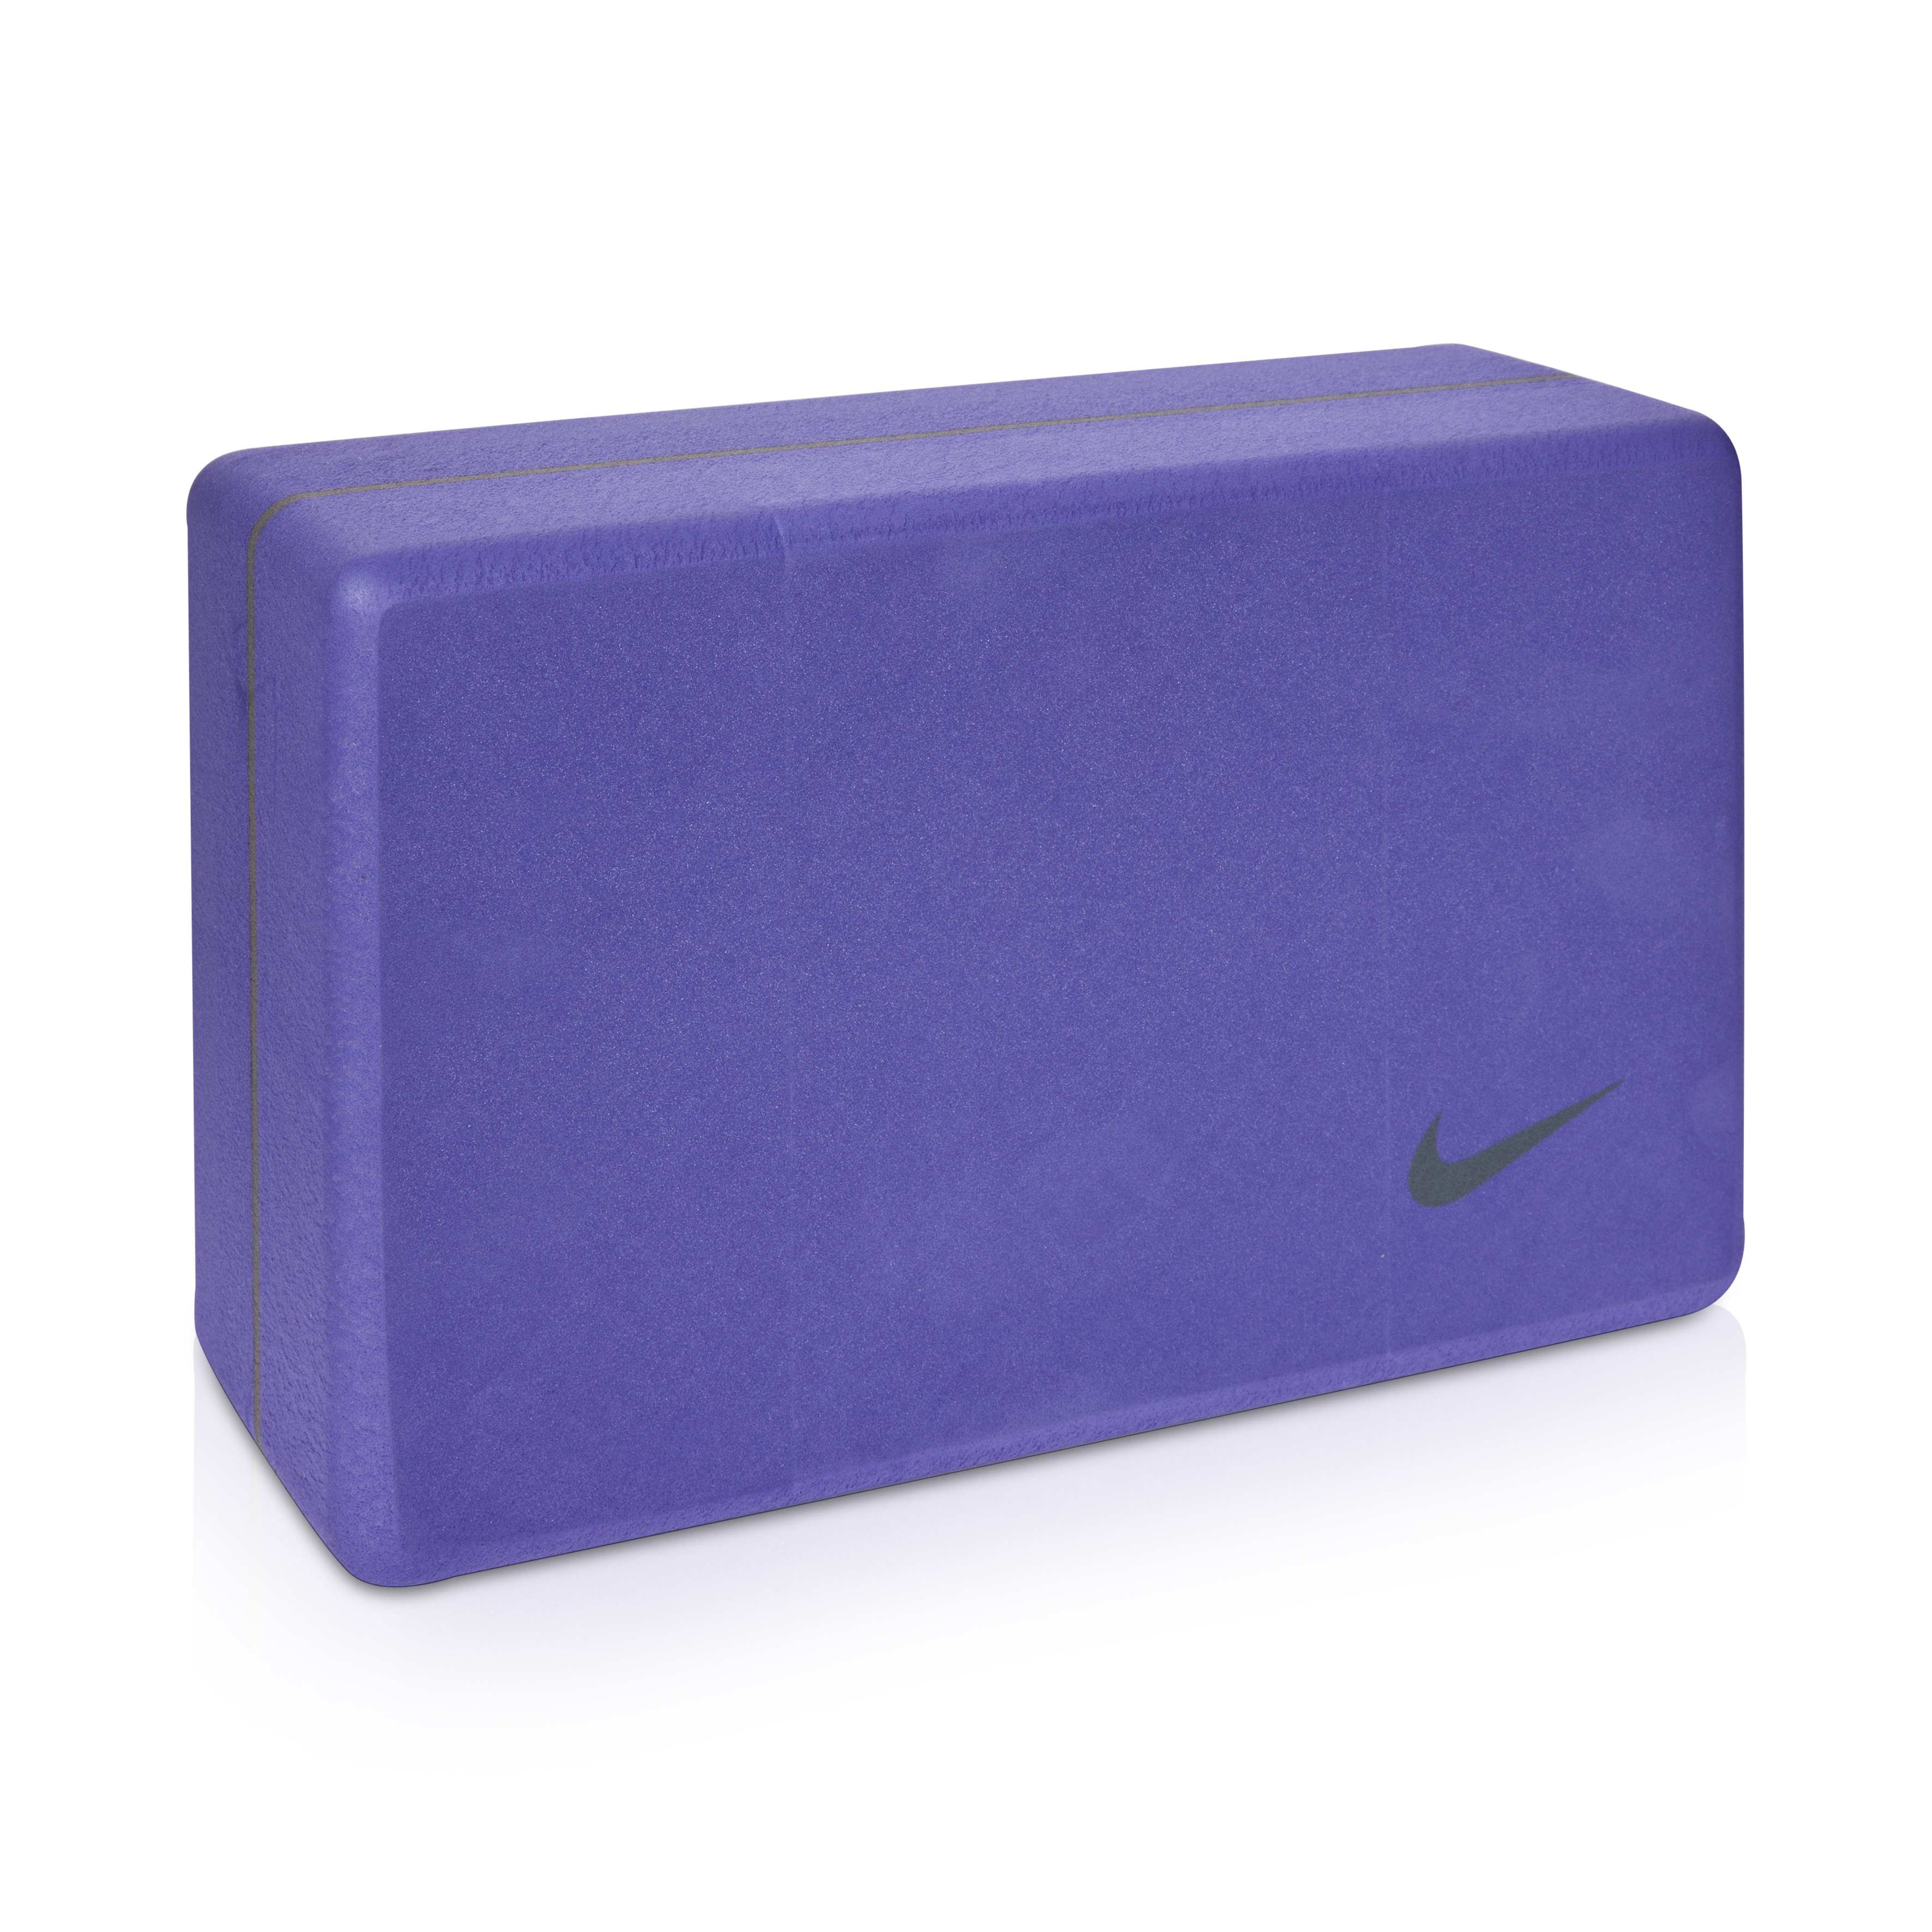 Nike Essential Yoga Block - Iced Lavender/Soft Grey